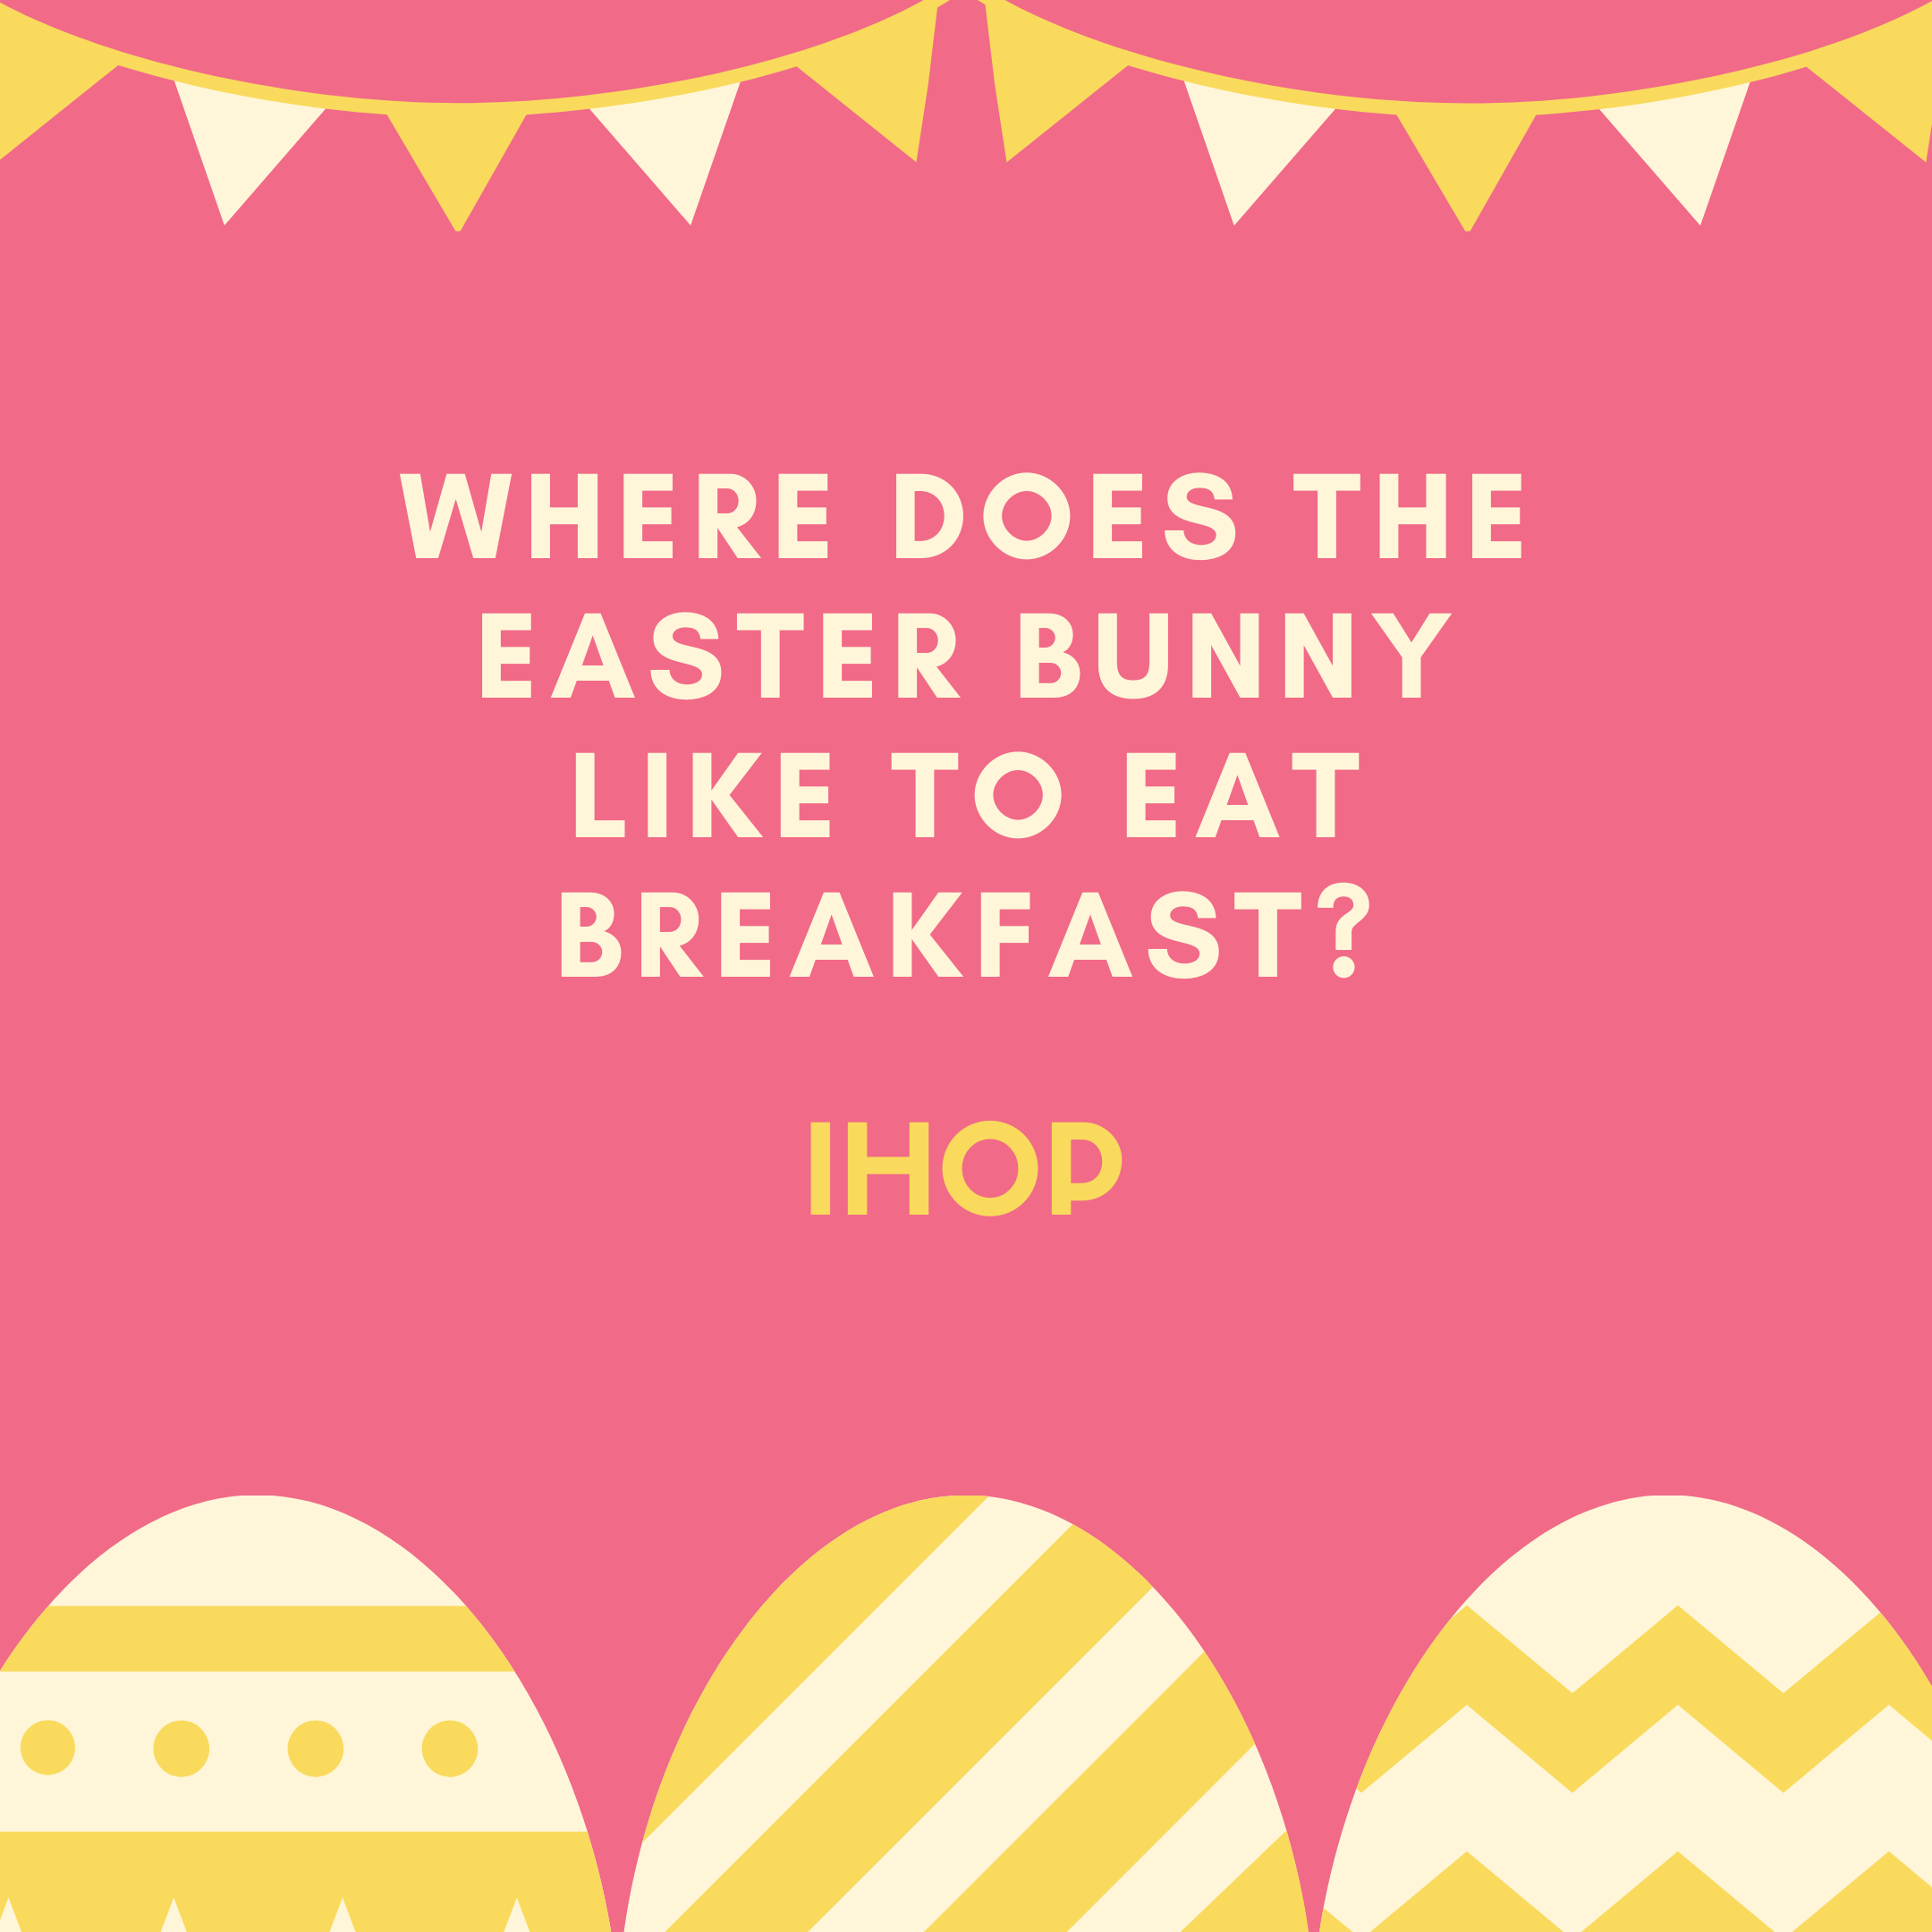 Where does the Easter Bunny like to eat breakfast? IHOP